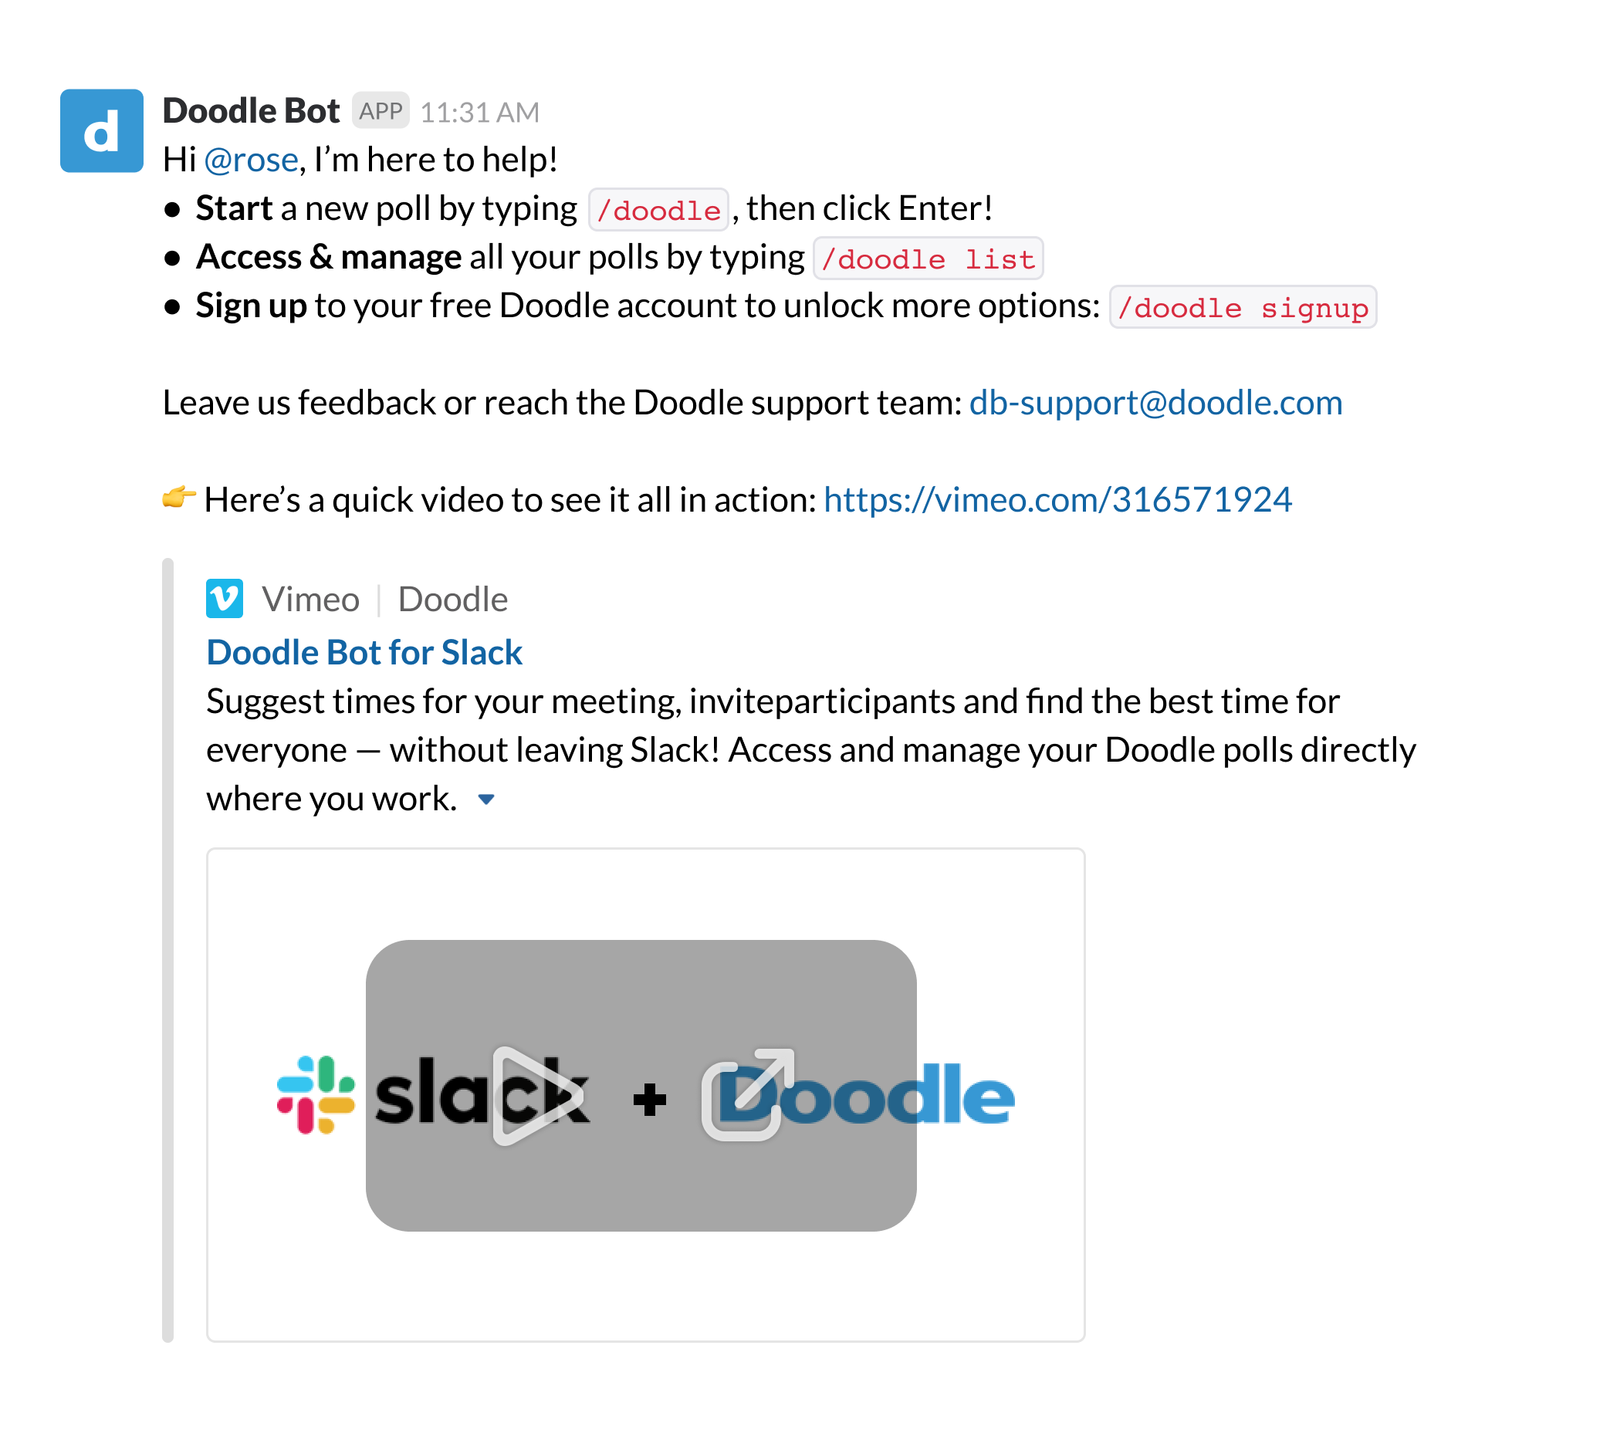 Doodle Bot offering list of helpful tips with embedded video